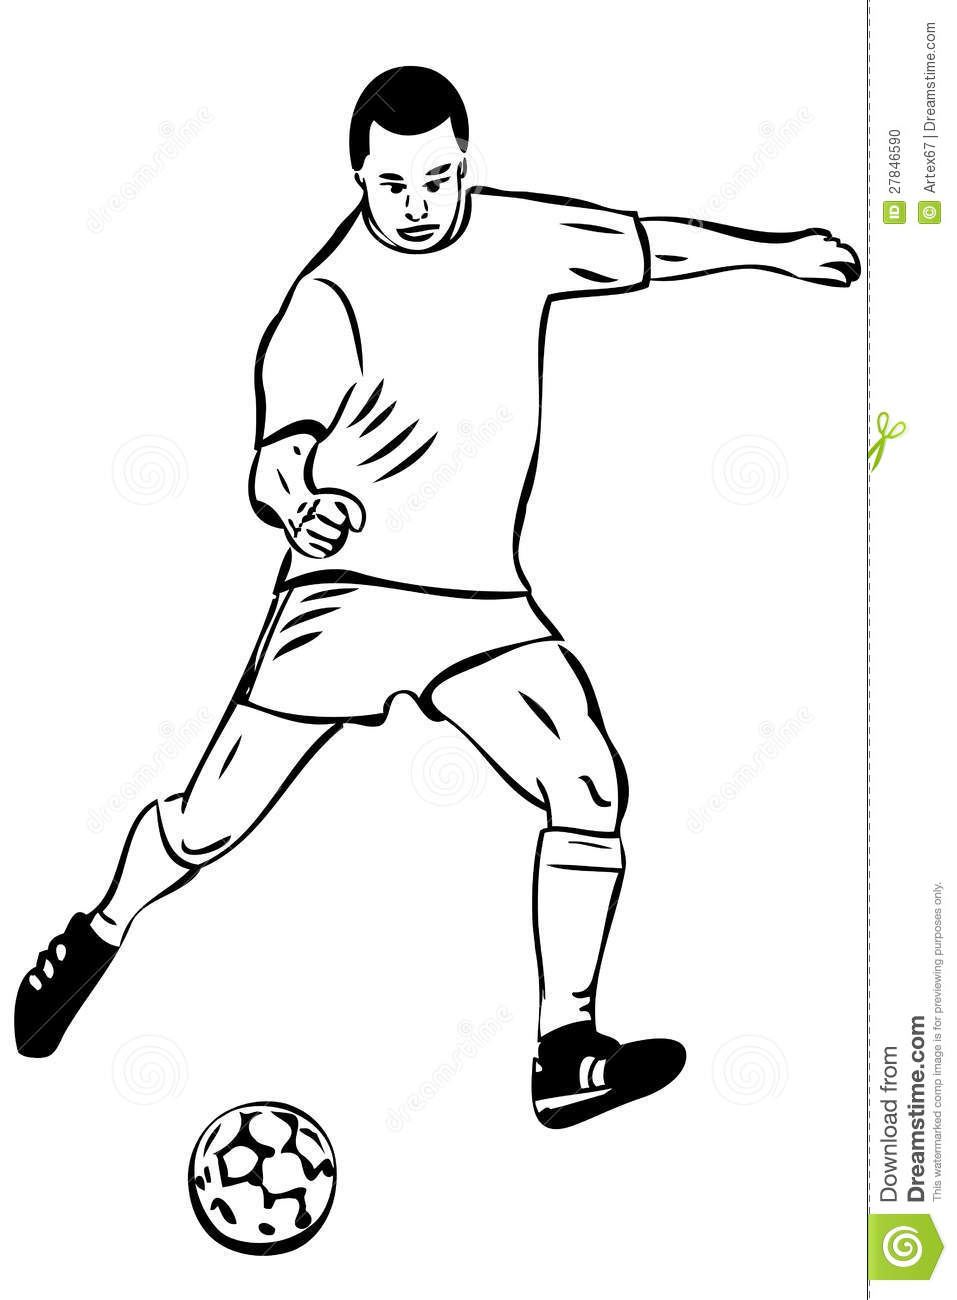 Sketch Athlete Football Player With The Ball Stock Vector - Illustration Of Action Professional ...